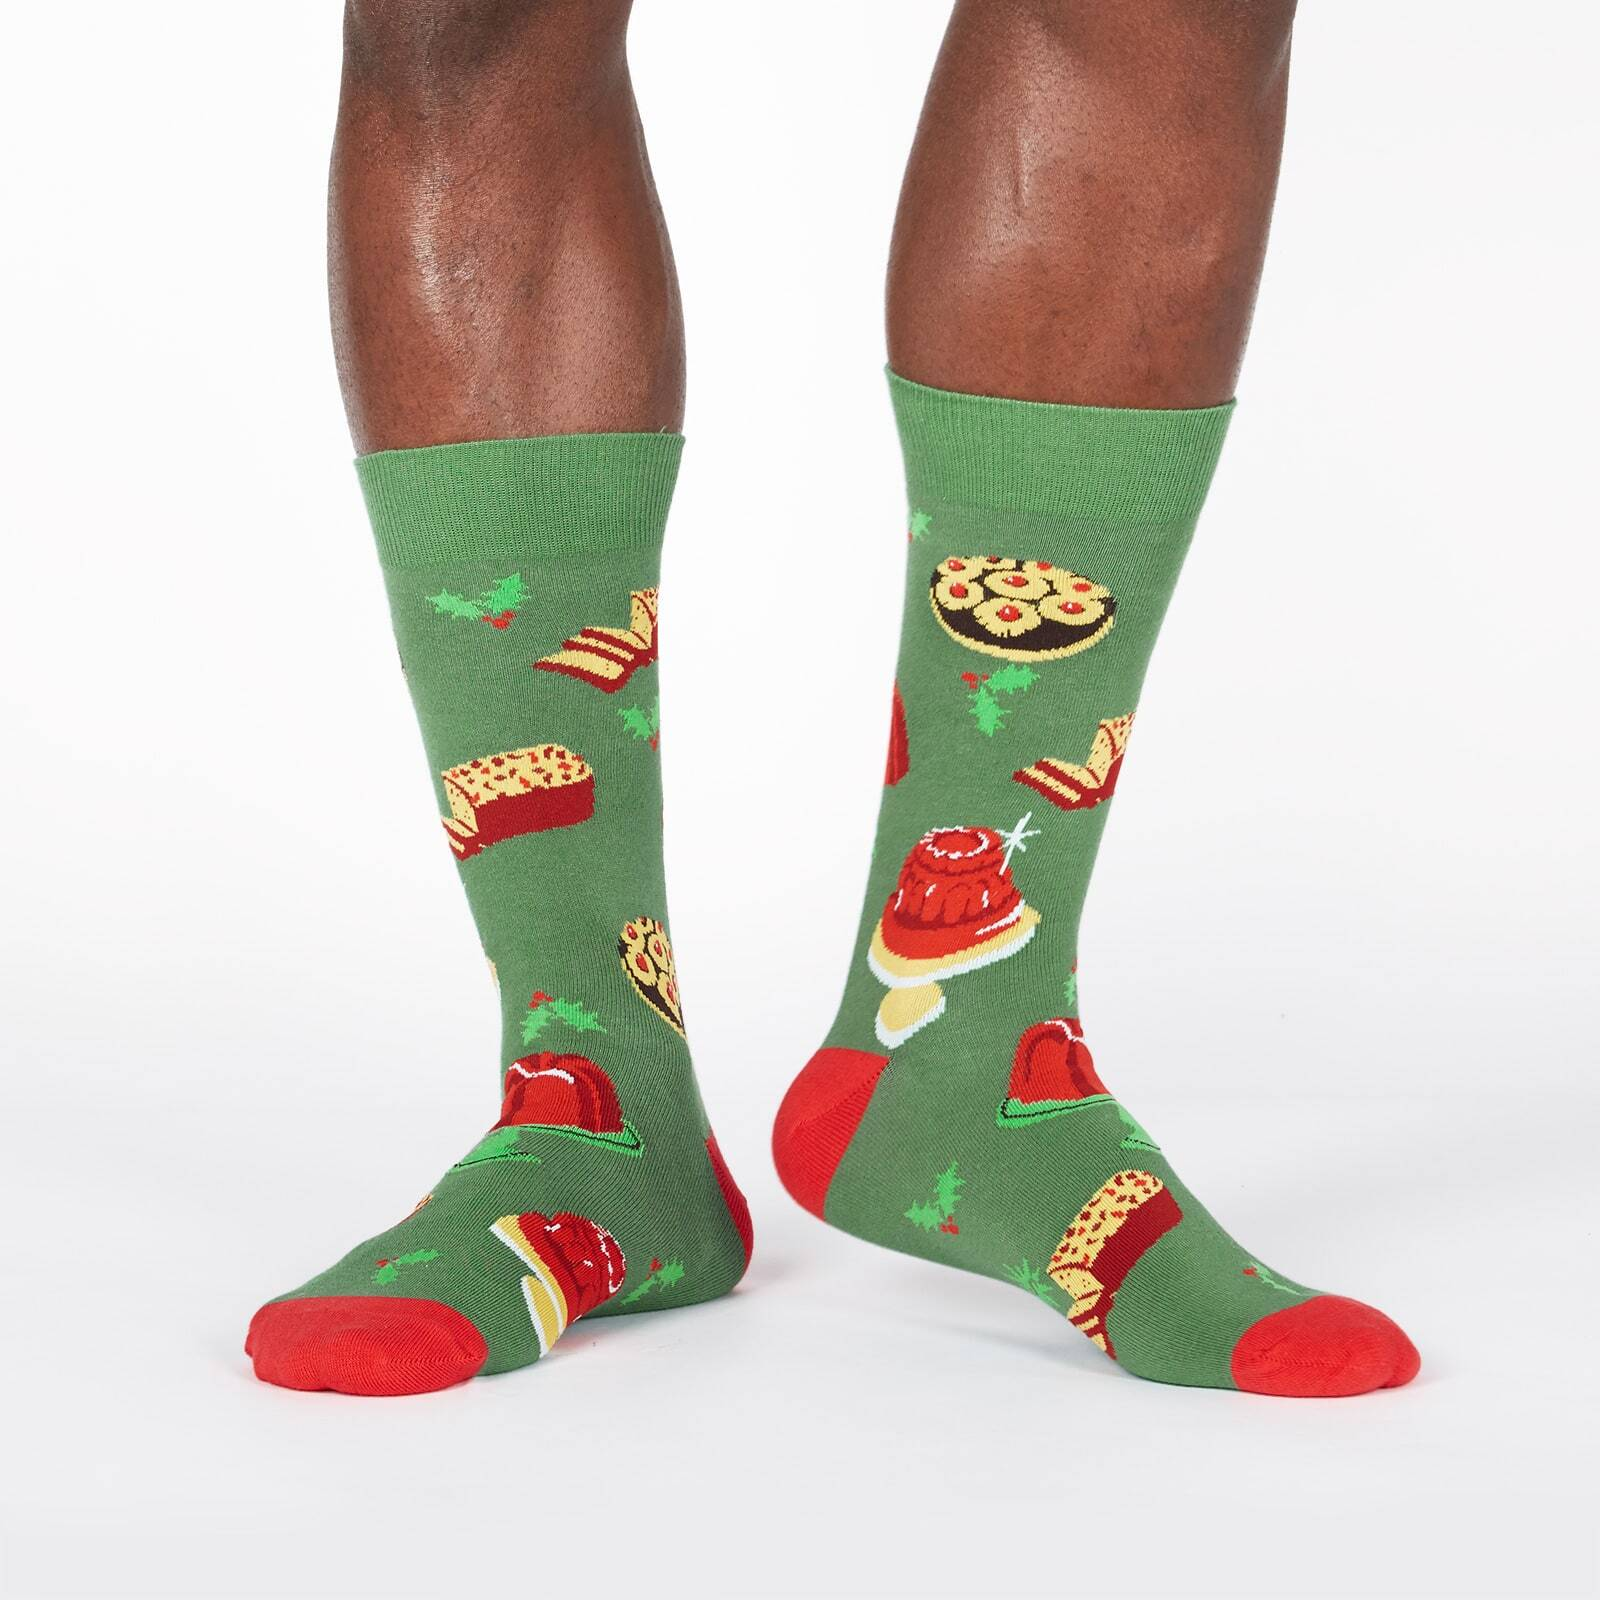 model wearing Getting Jiggly with It - Gelatin Dessert Christmas Holiday Dinner Crew Socks Green - Men's